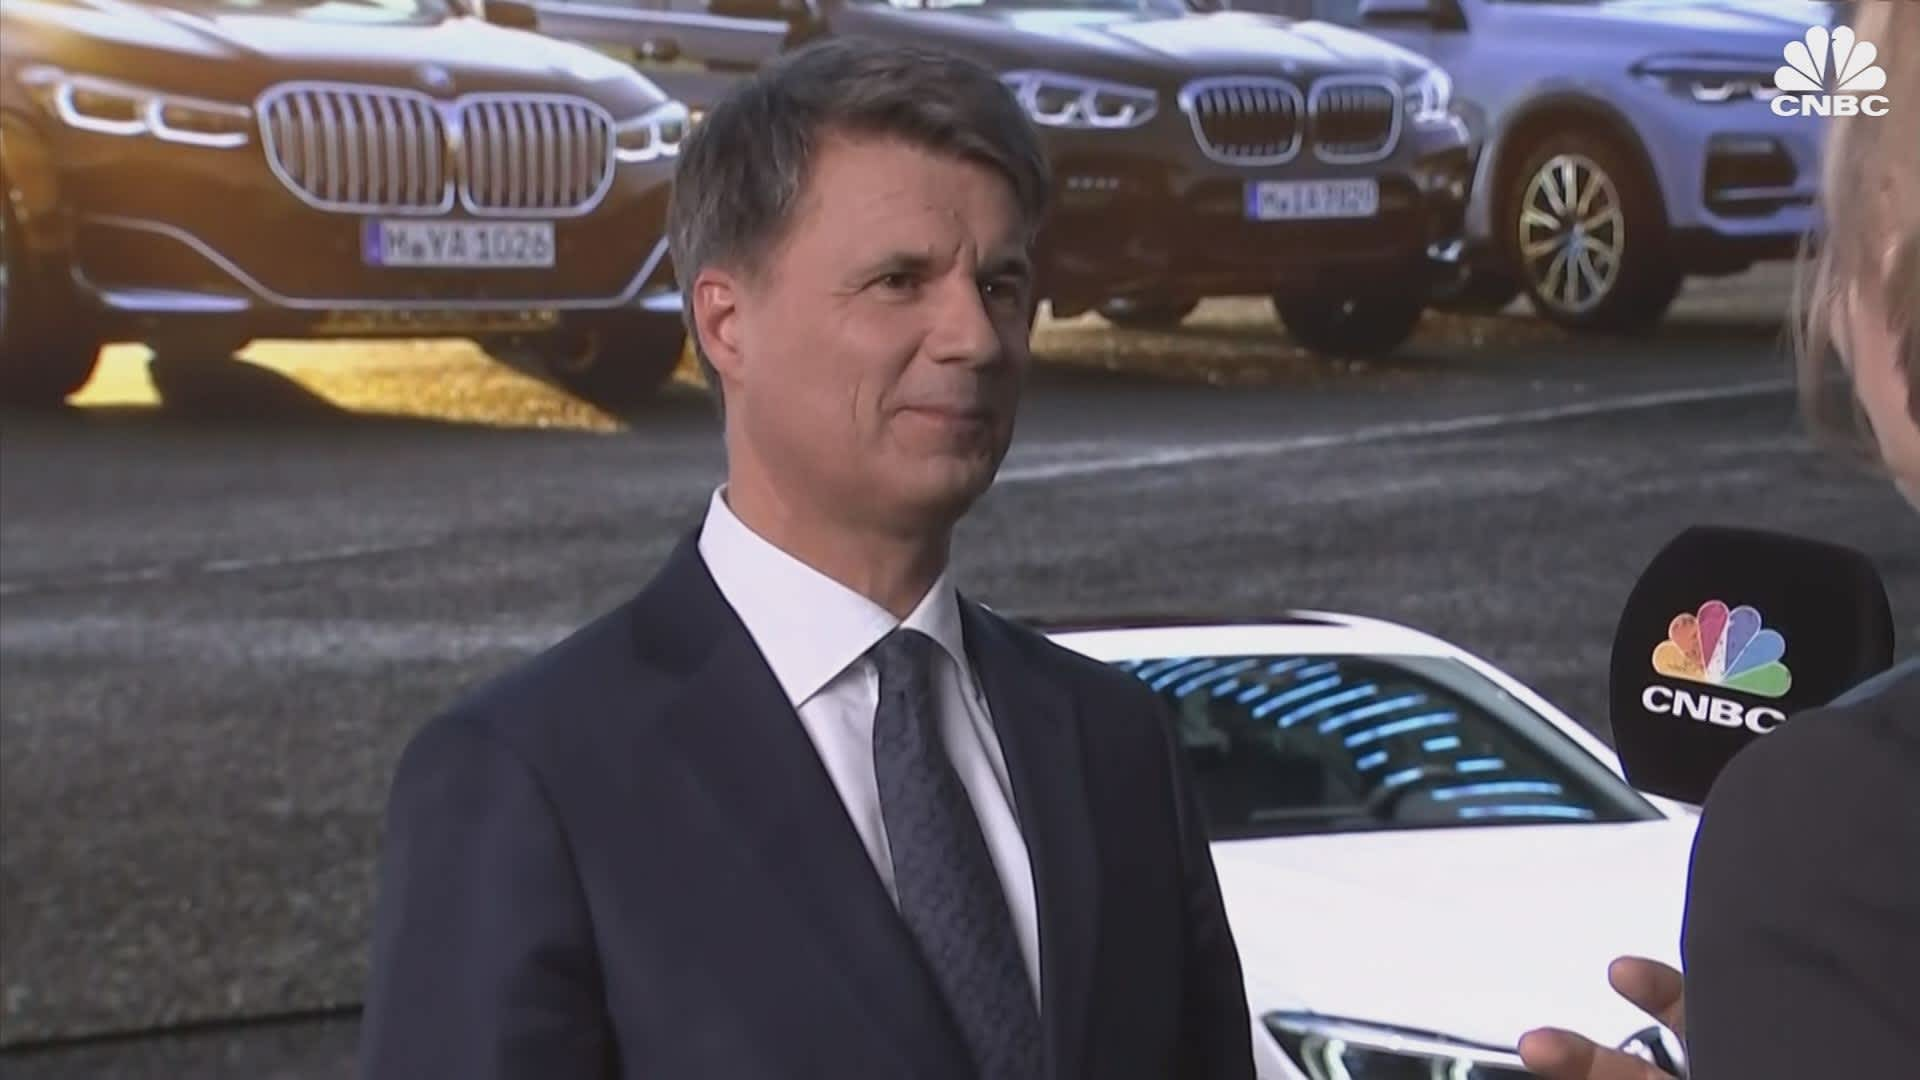 Bmw First Quarter Profit Falls 78 Hit By 1 4 Billion Euro Legal Provision Expenses